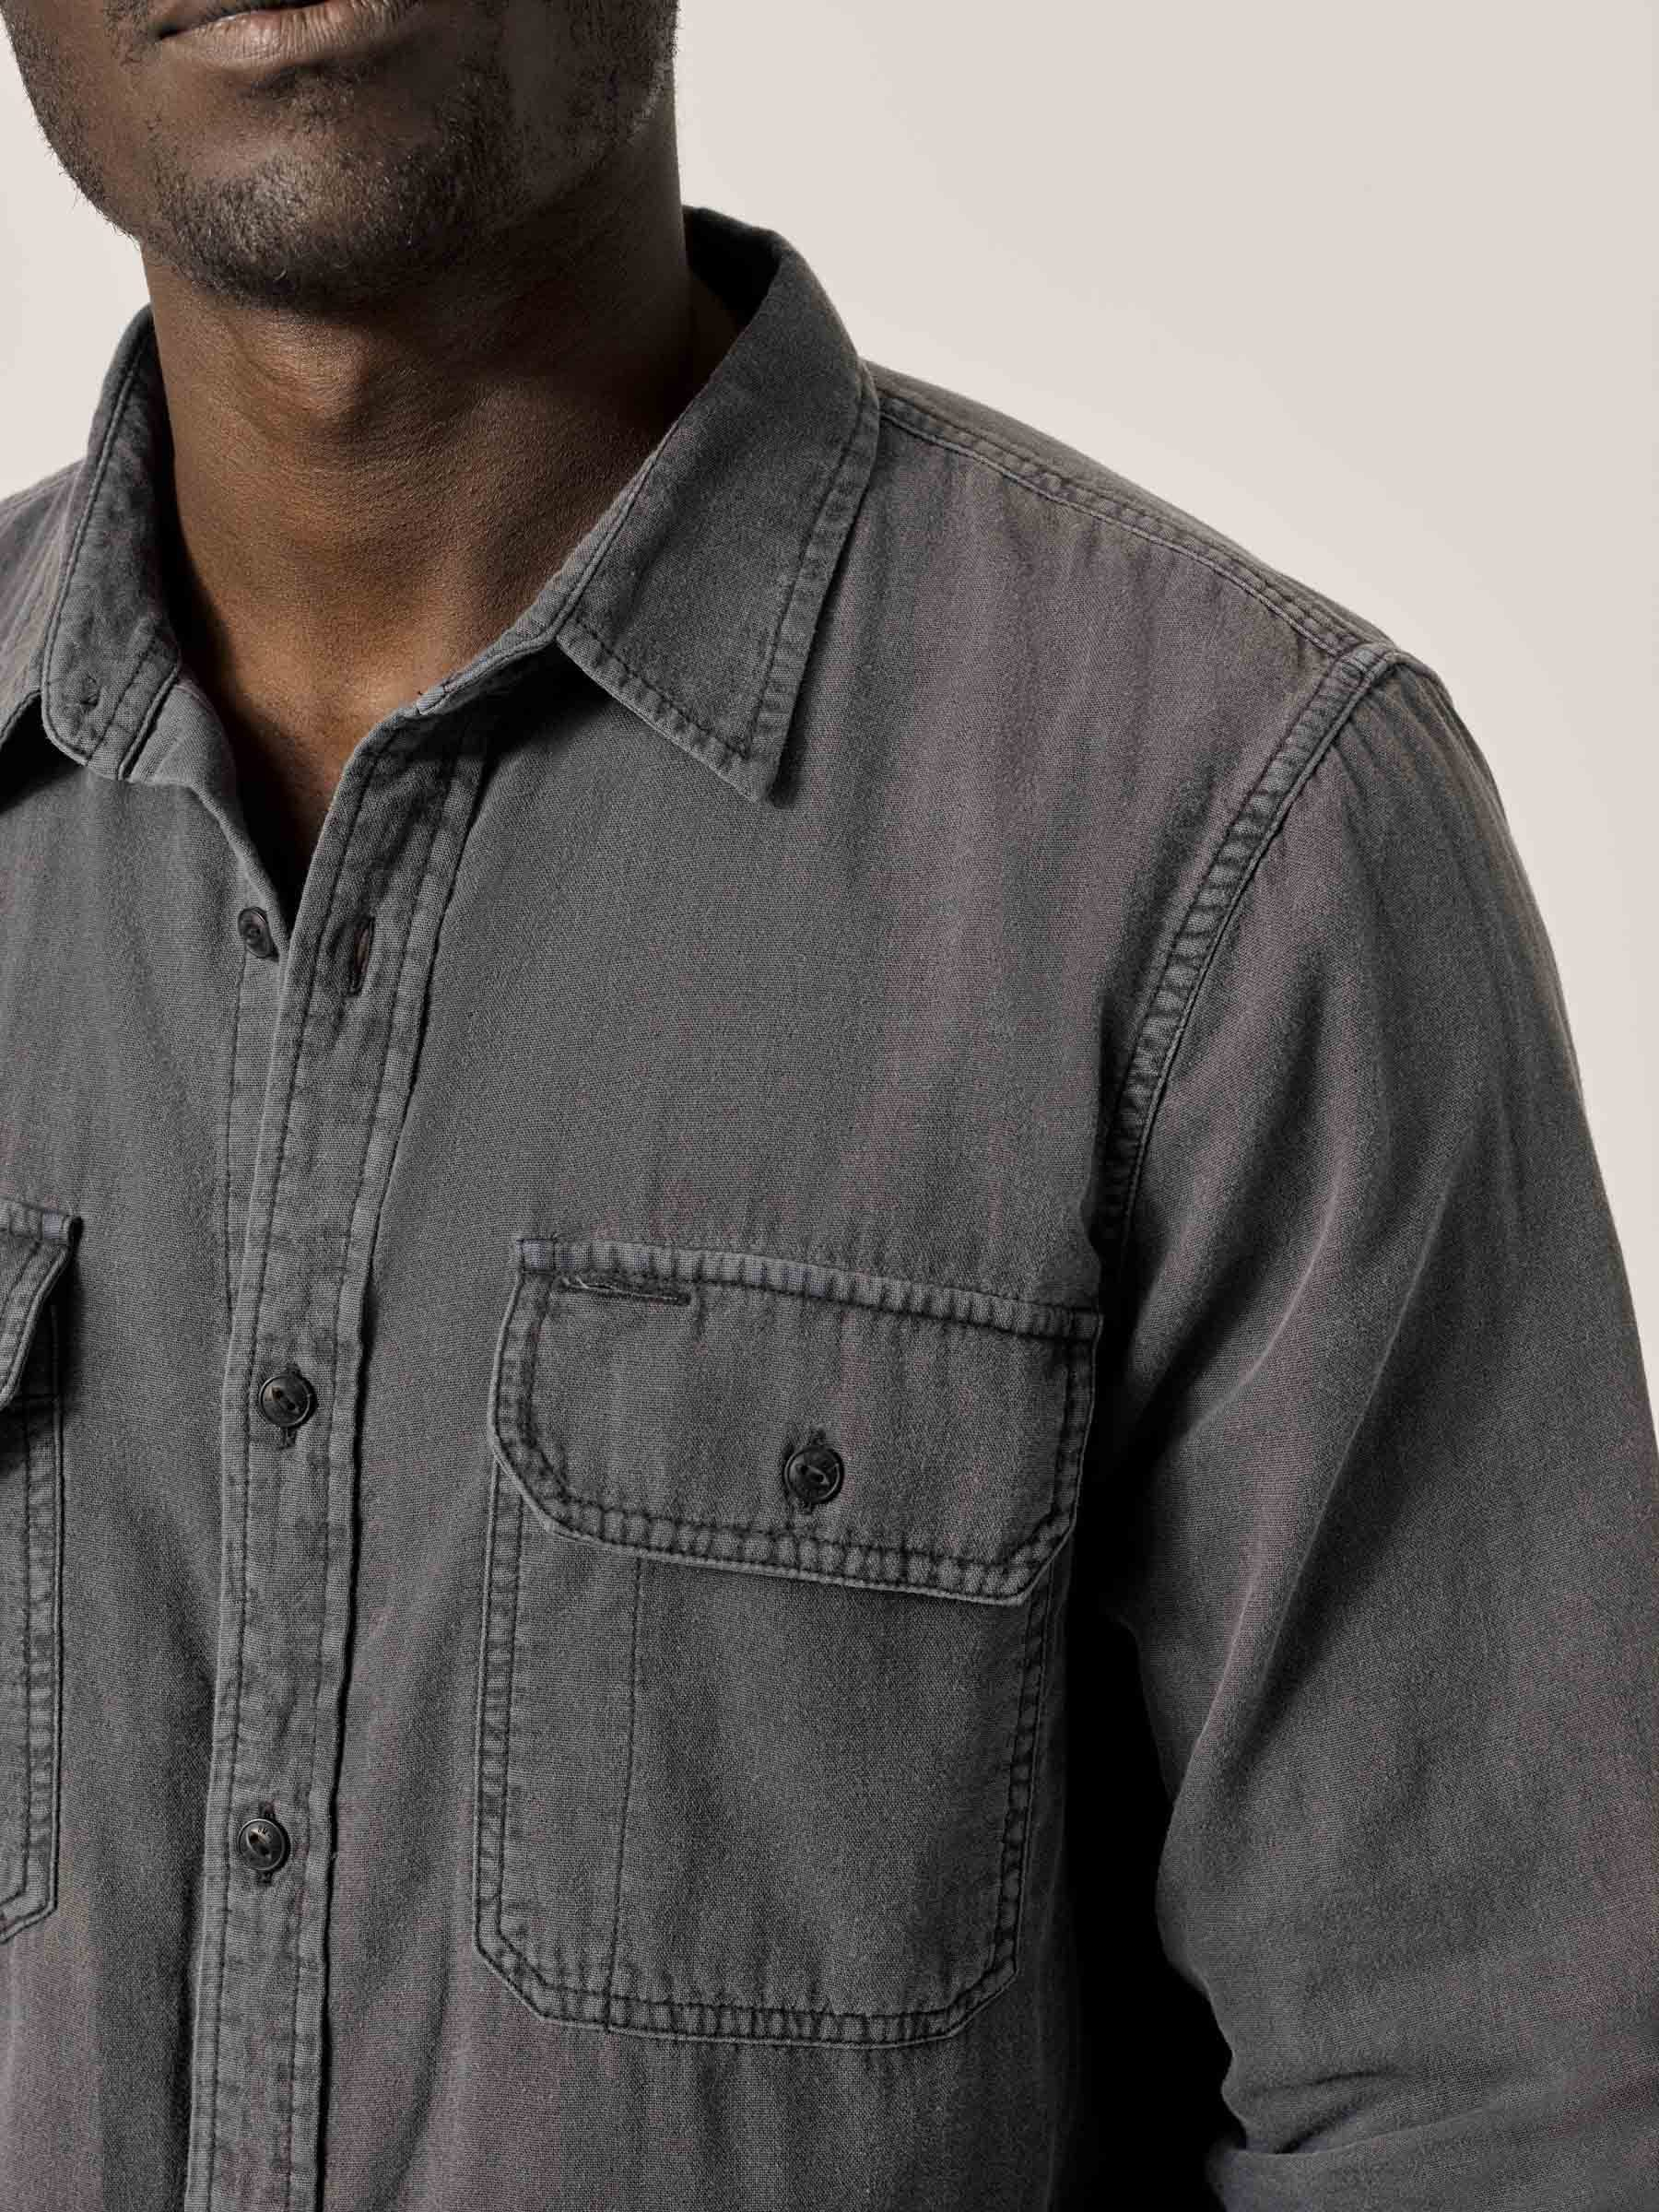 Buck Mason - Faded Charcoal Double Weave Vintage Two Pocket Shirt